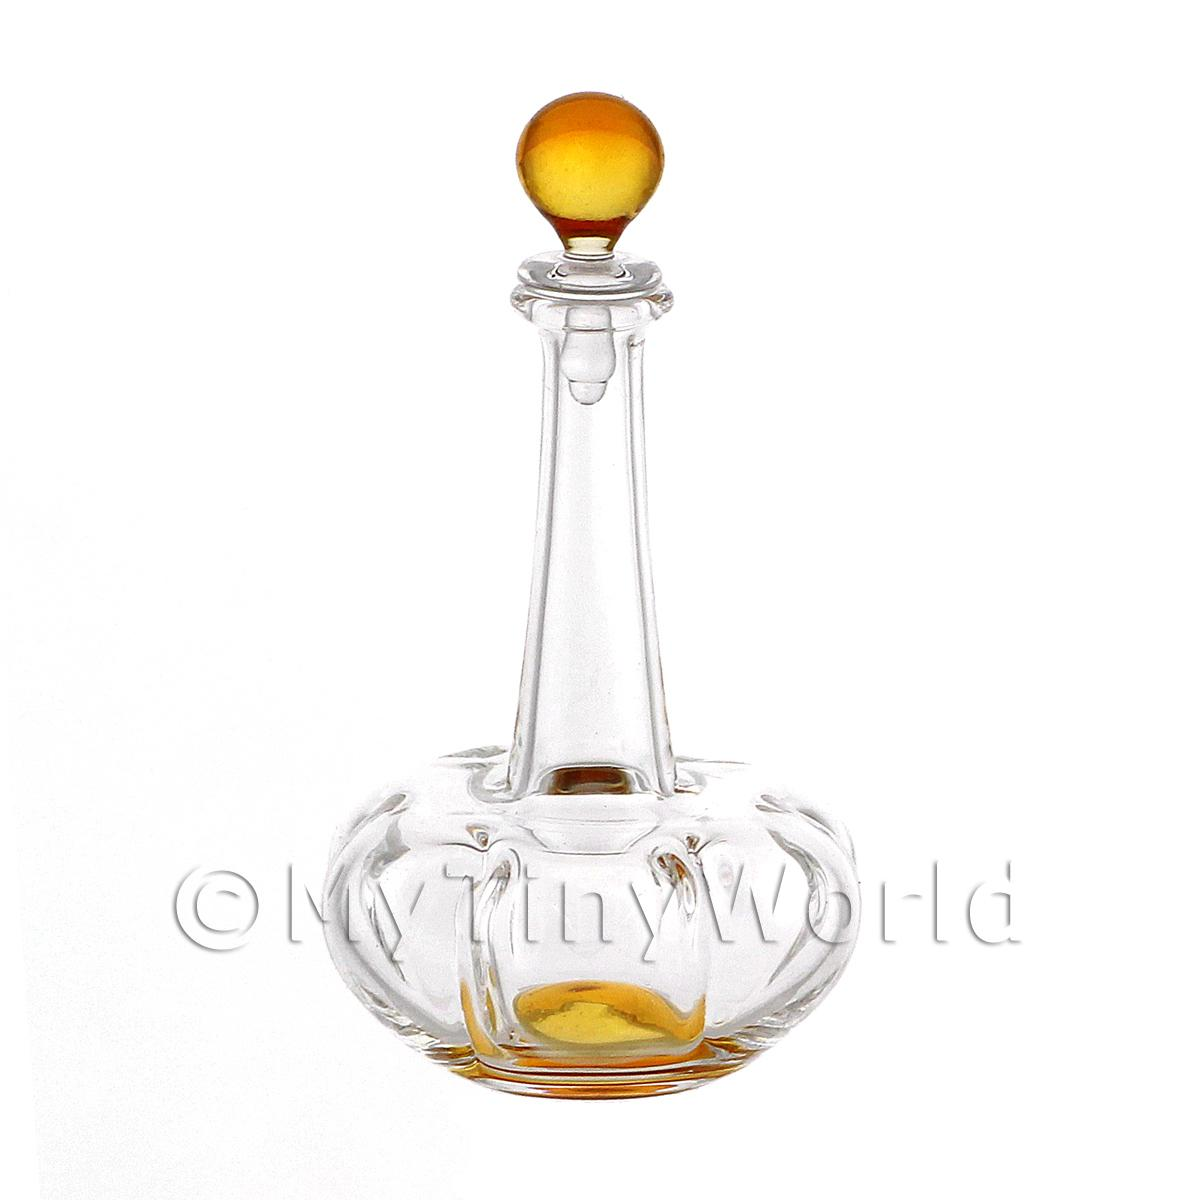 Dolls House Miniature Handmade Orange Based Clasp Style Glass Decanter